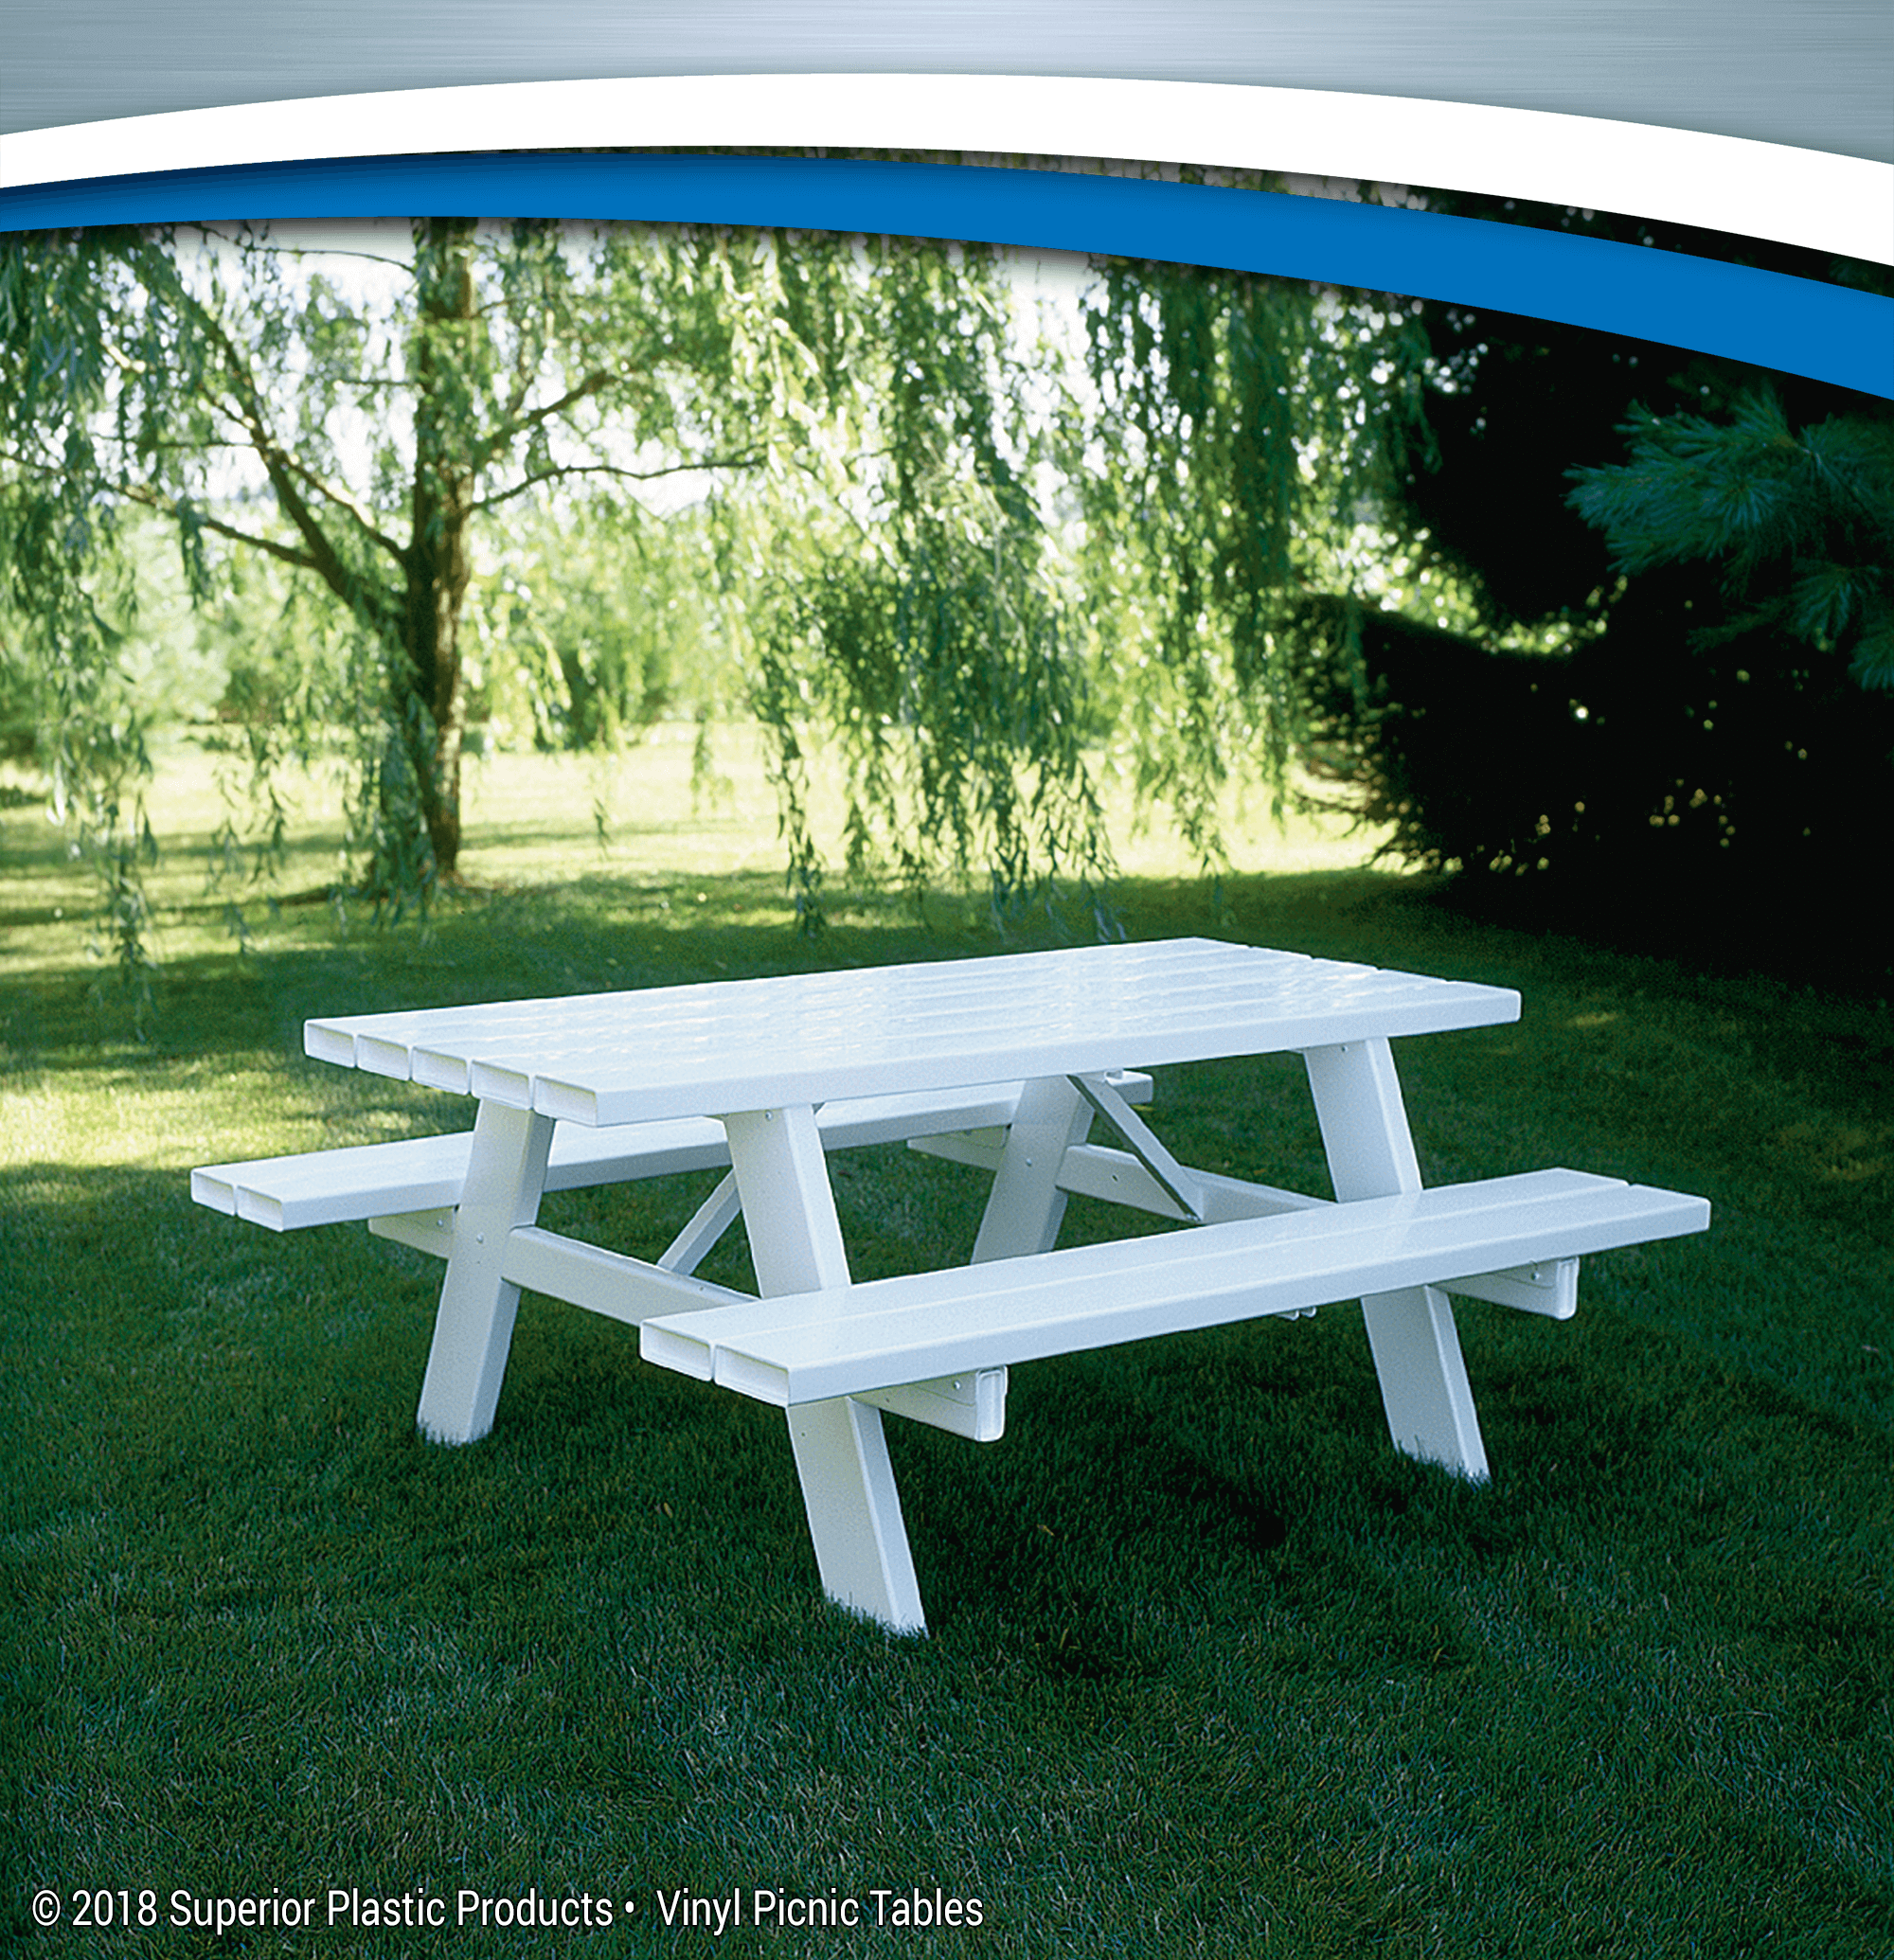 High Quality Vinyl Picnic Tables Superior Plactic Products - Ready to assemble picnic table